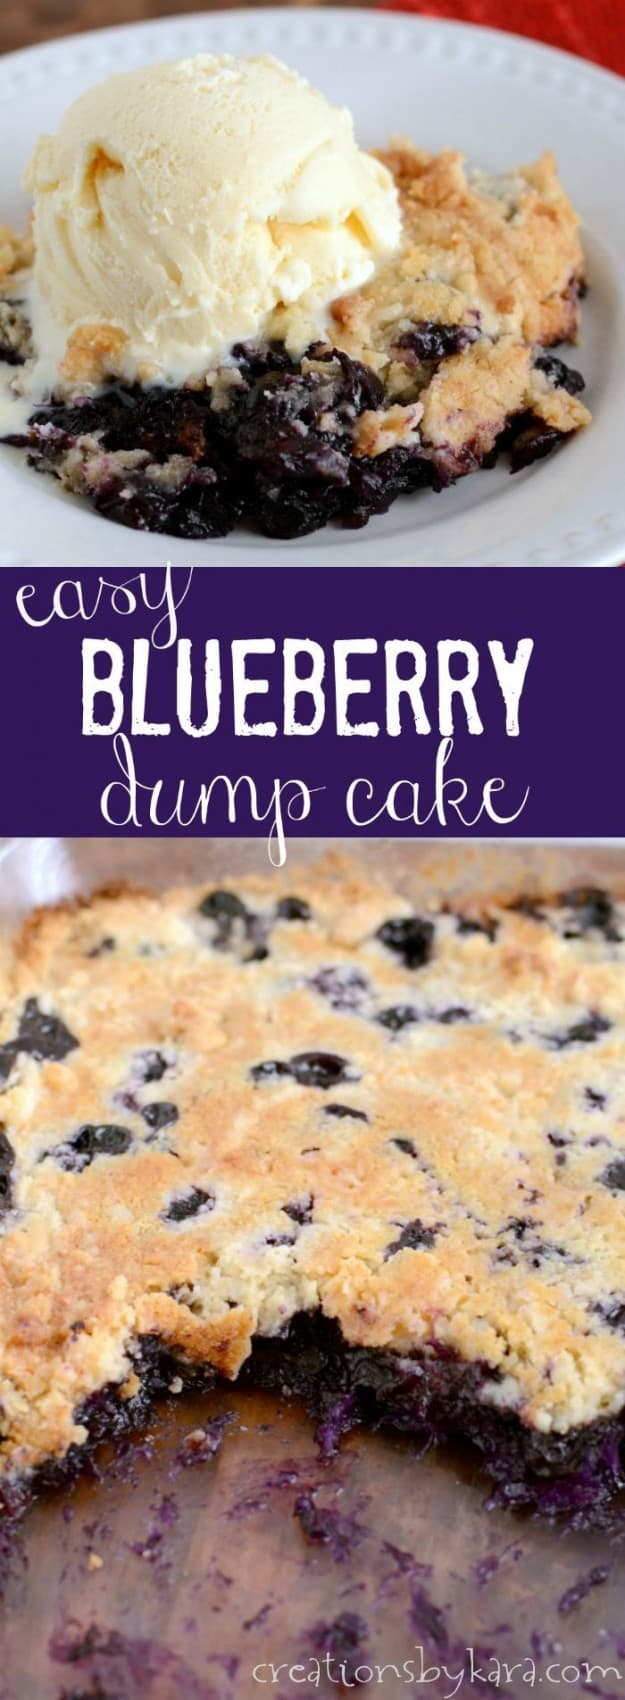 Easiest Blueberry dump cake recipe collage